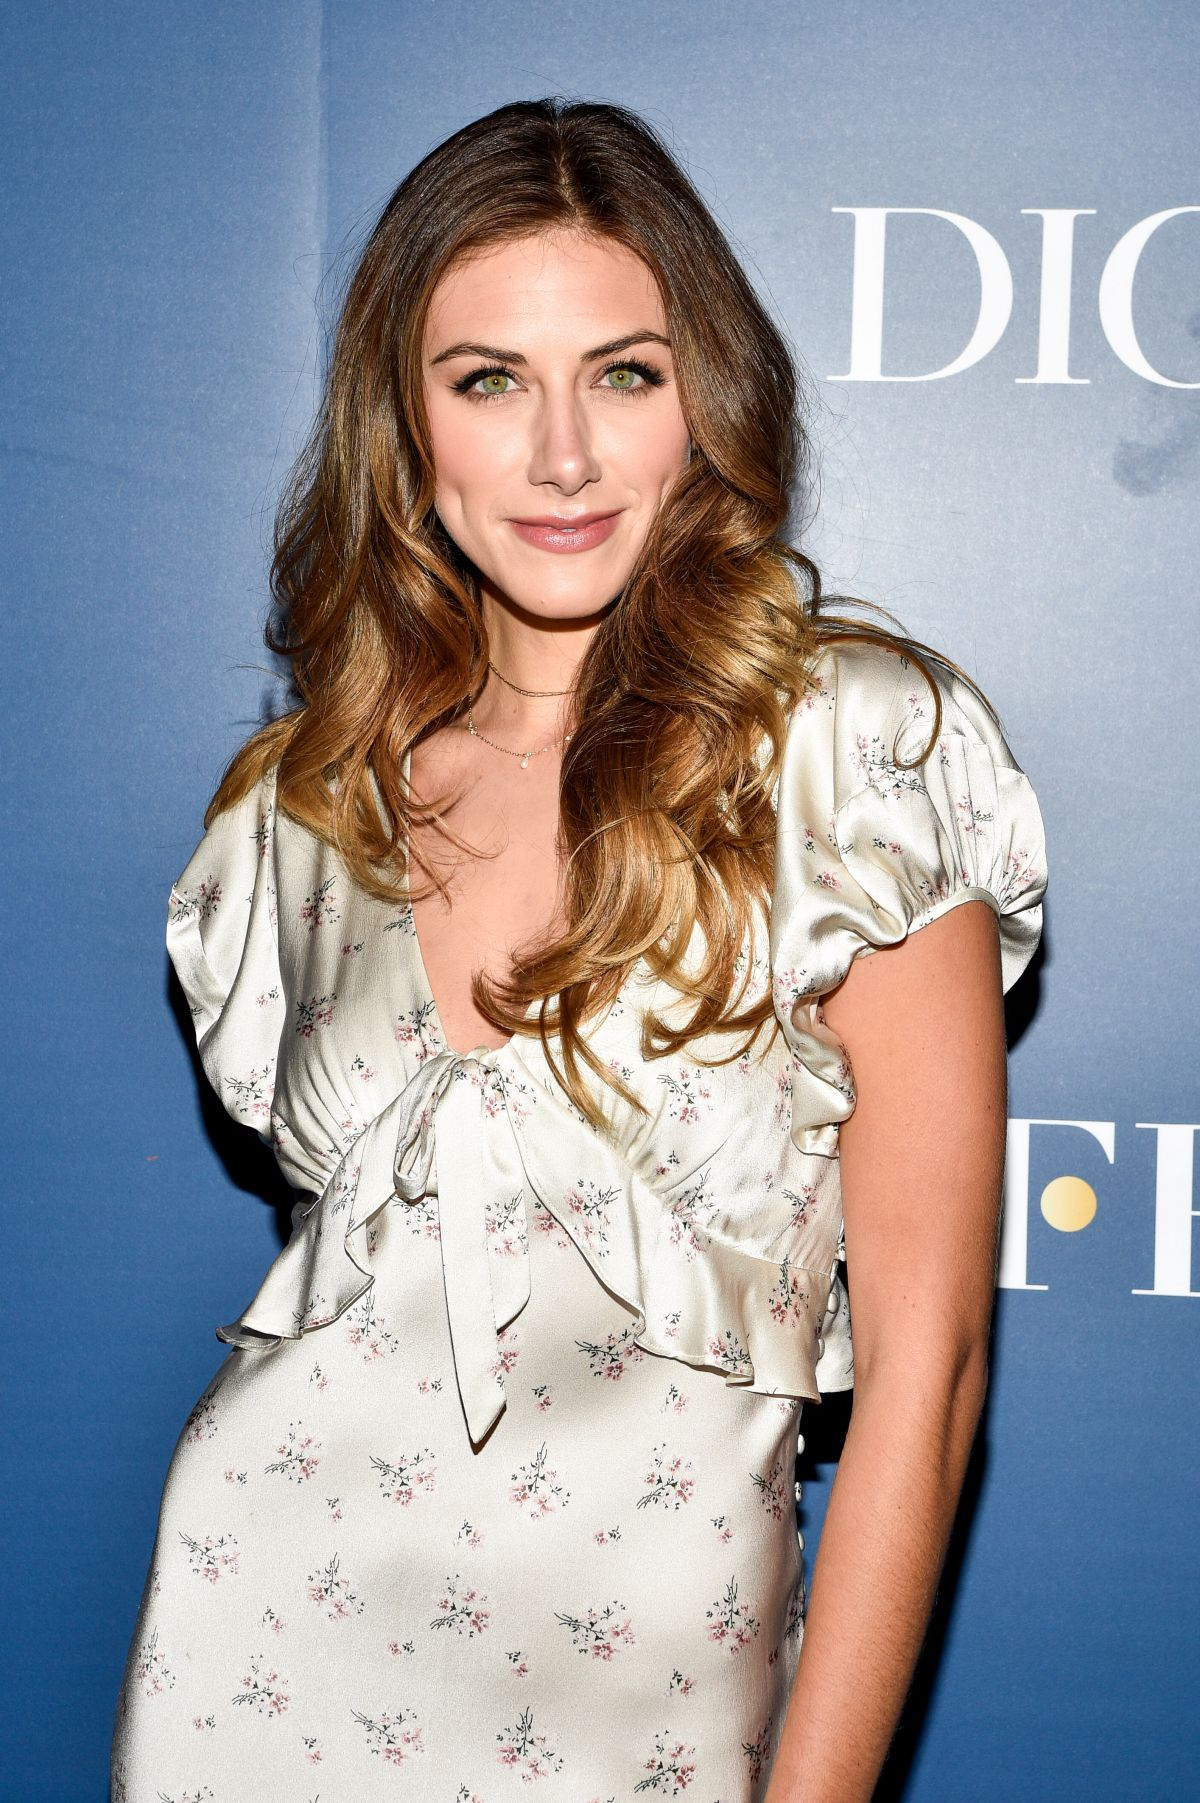 PERRY MATTFELD at HFPA x Hollywood Reporter Party in